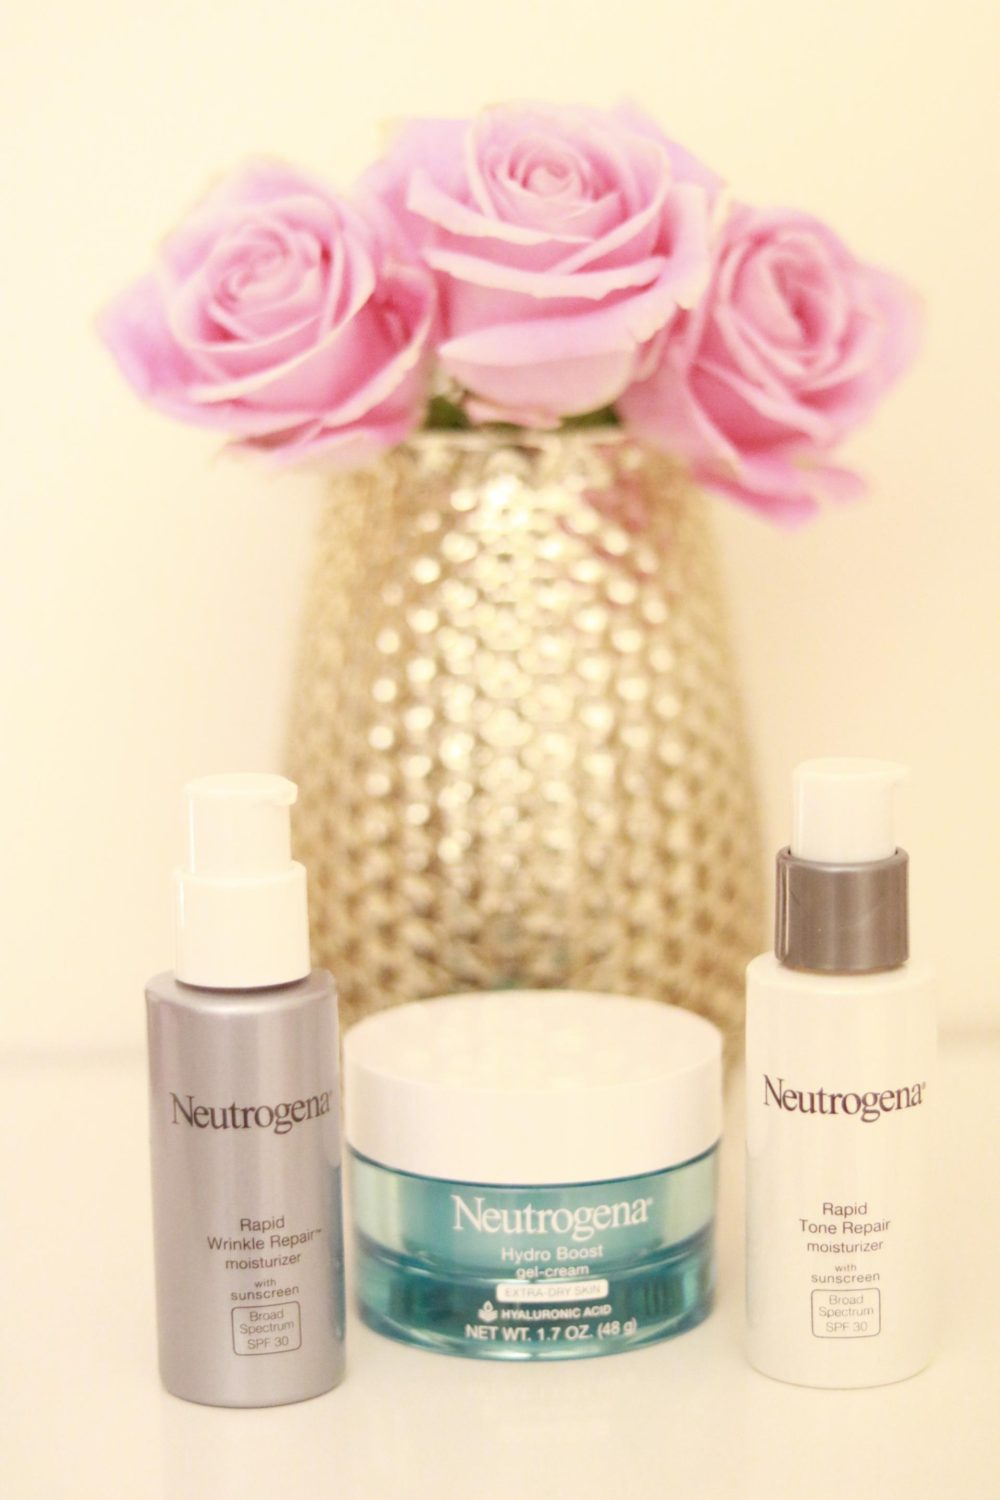 #PielSanaEsBella // Healthy Skin with Neutrogena